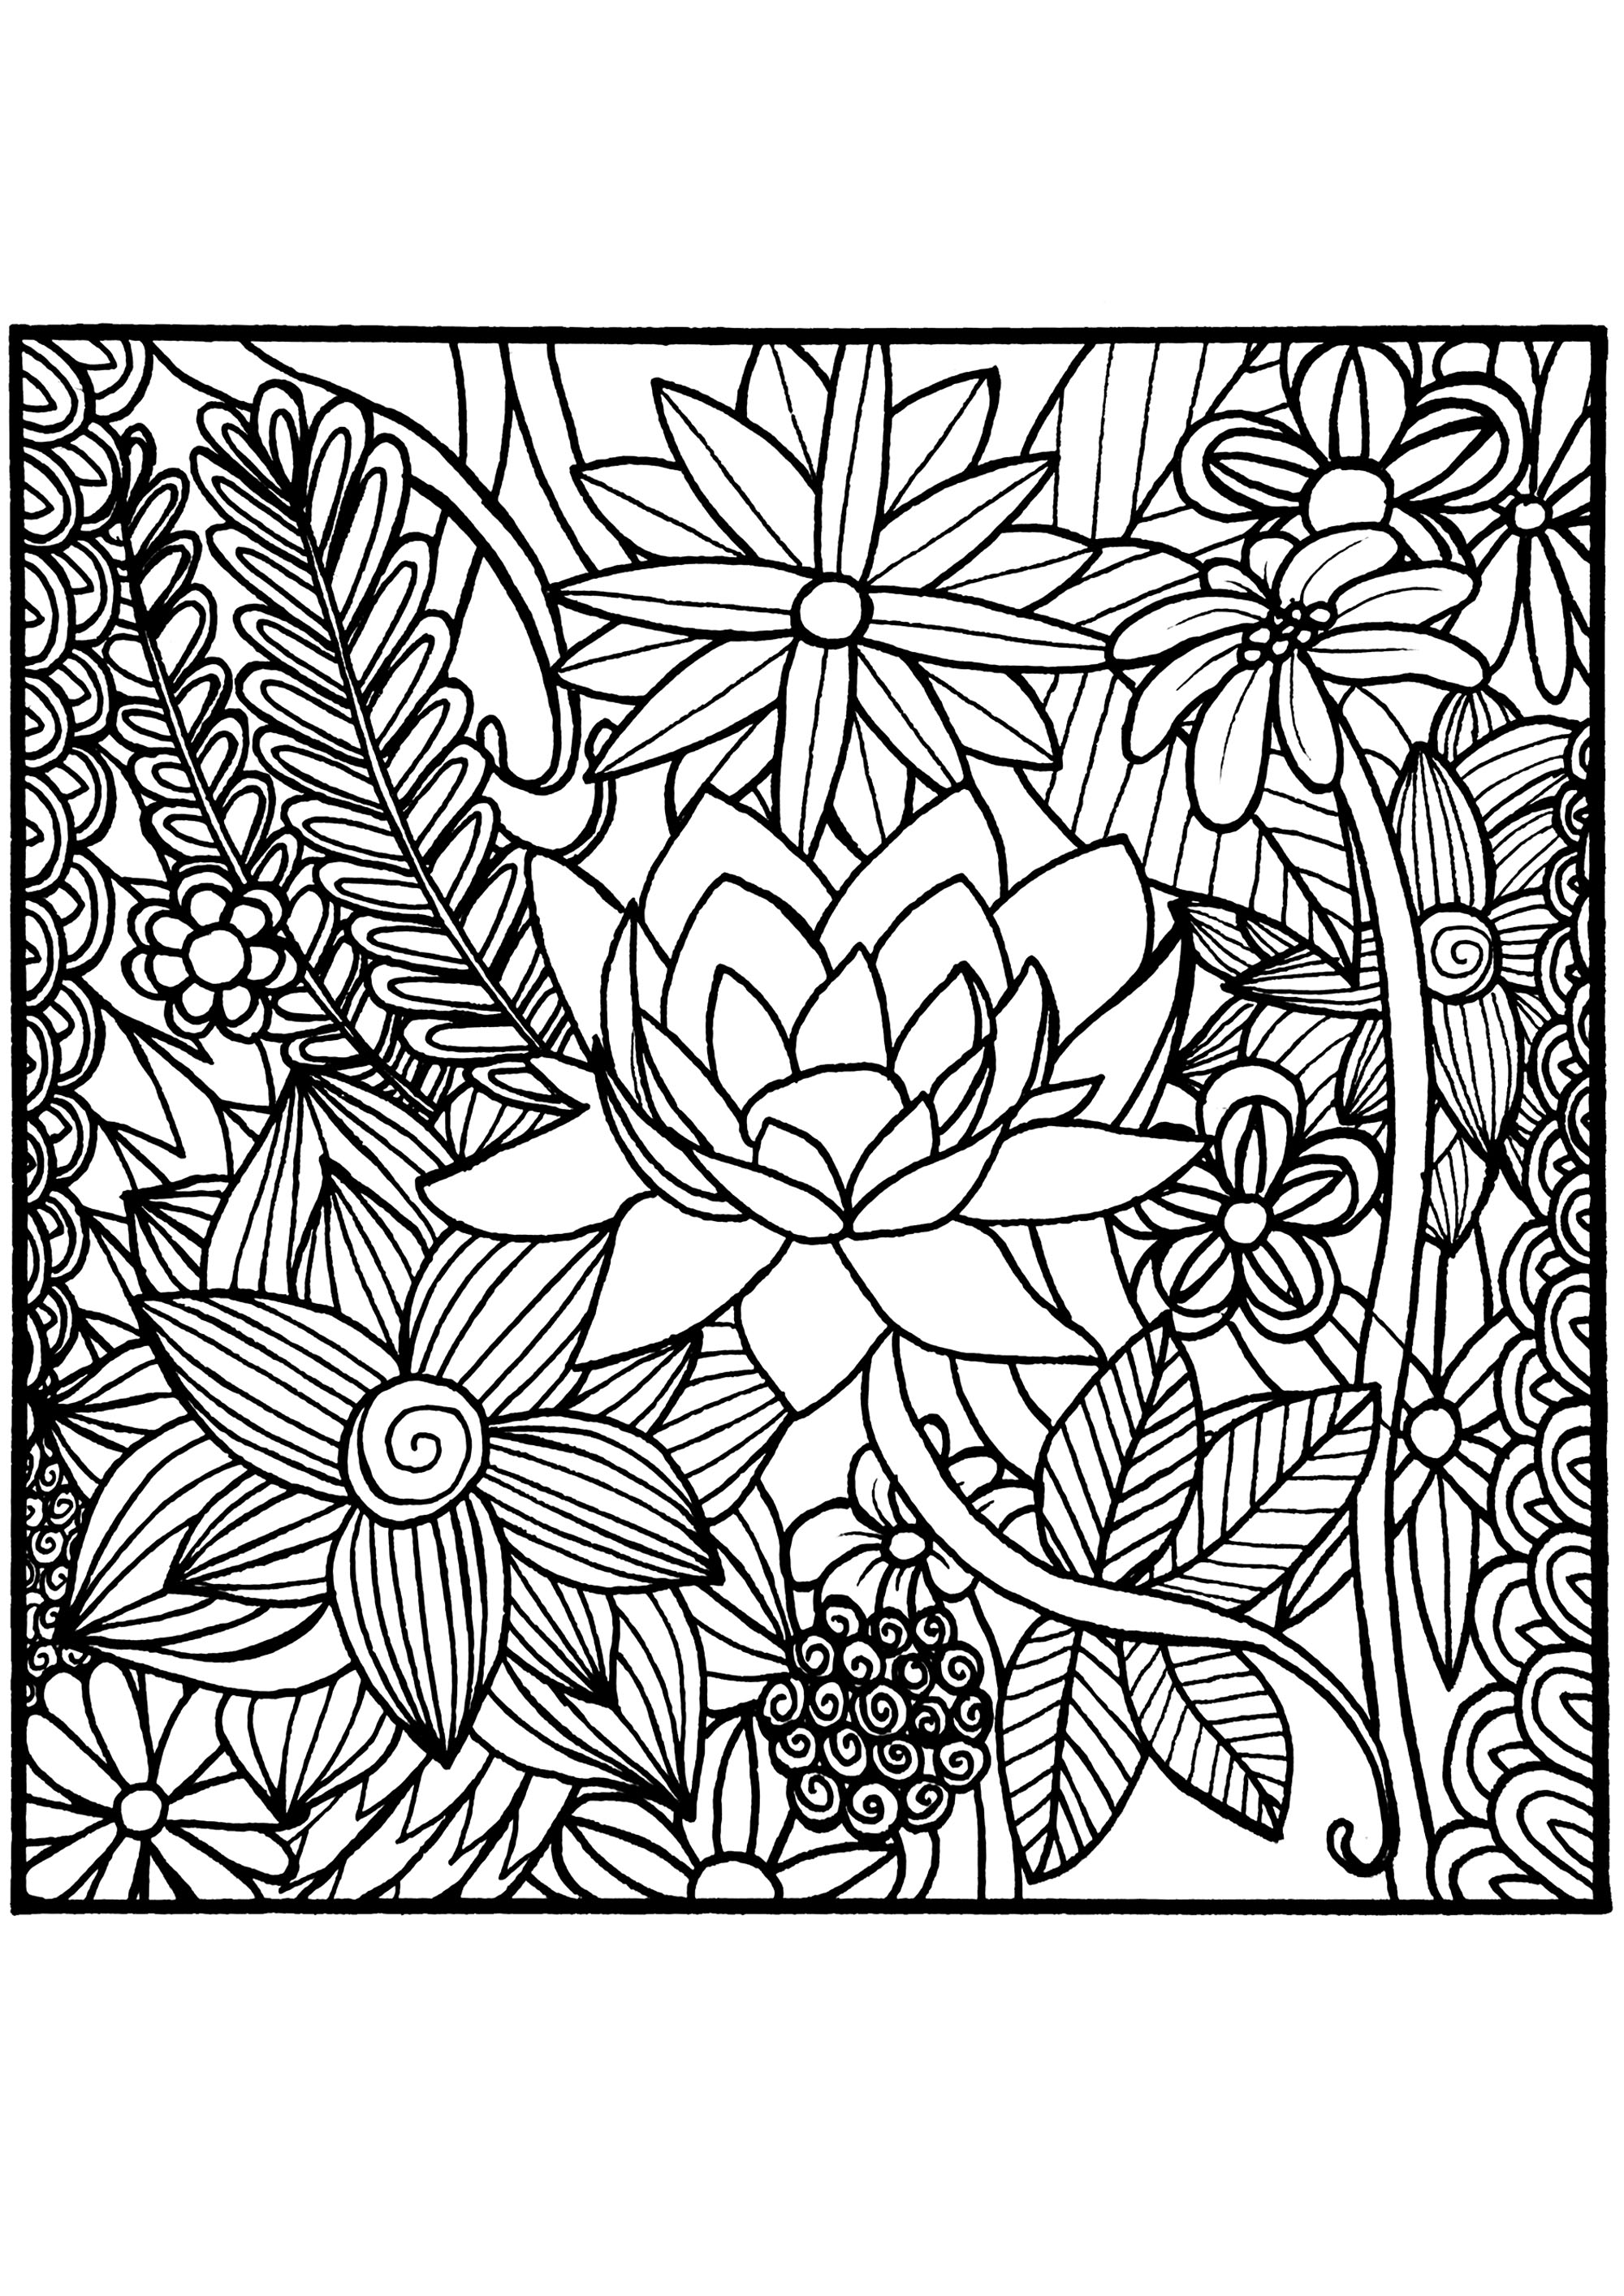 coloring pages for adults to print flowers free printable flower coloring pages for kids best print pages flowers for to adults coloring